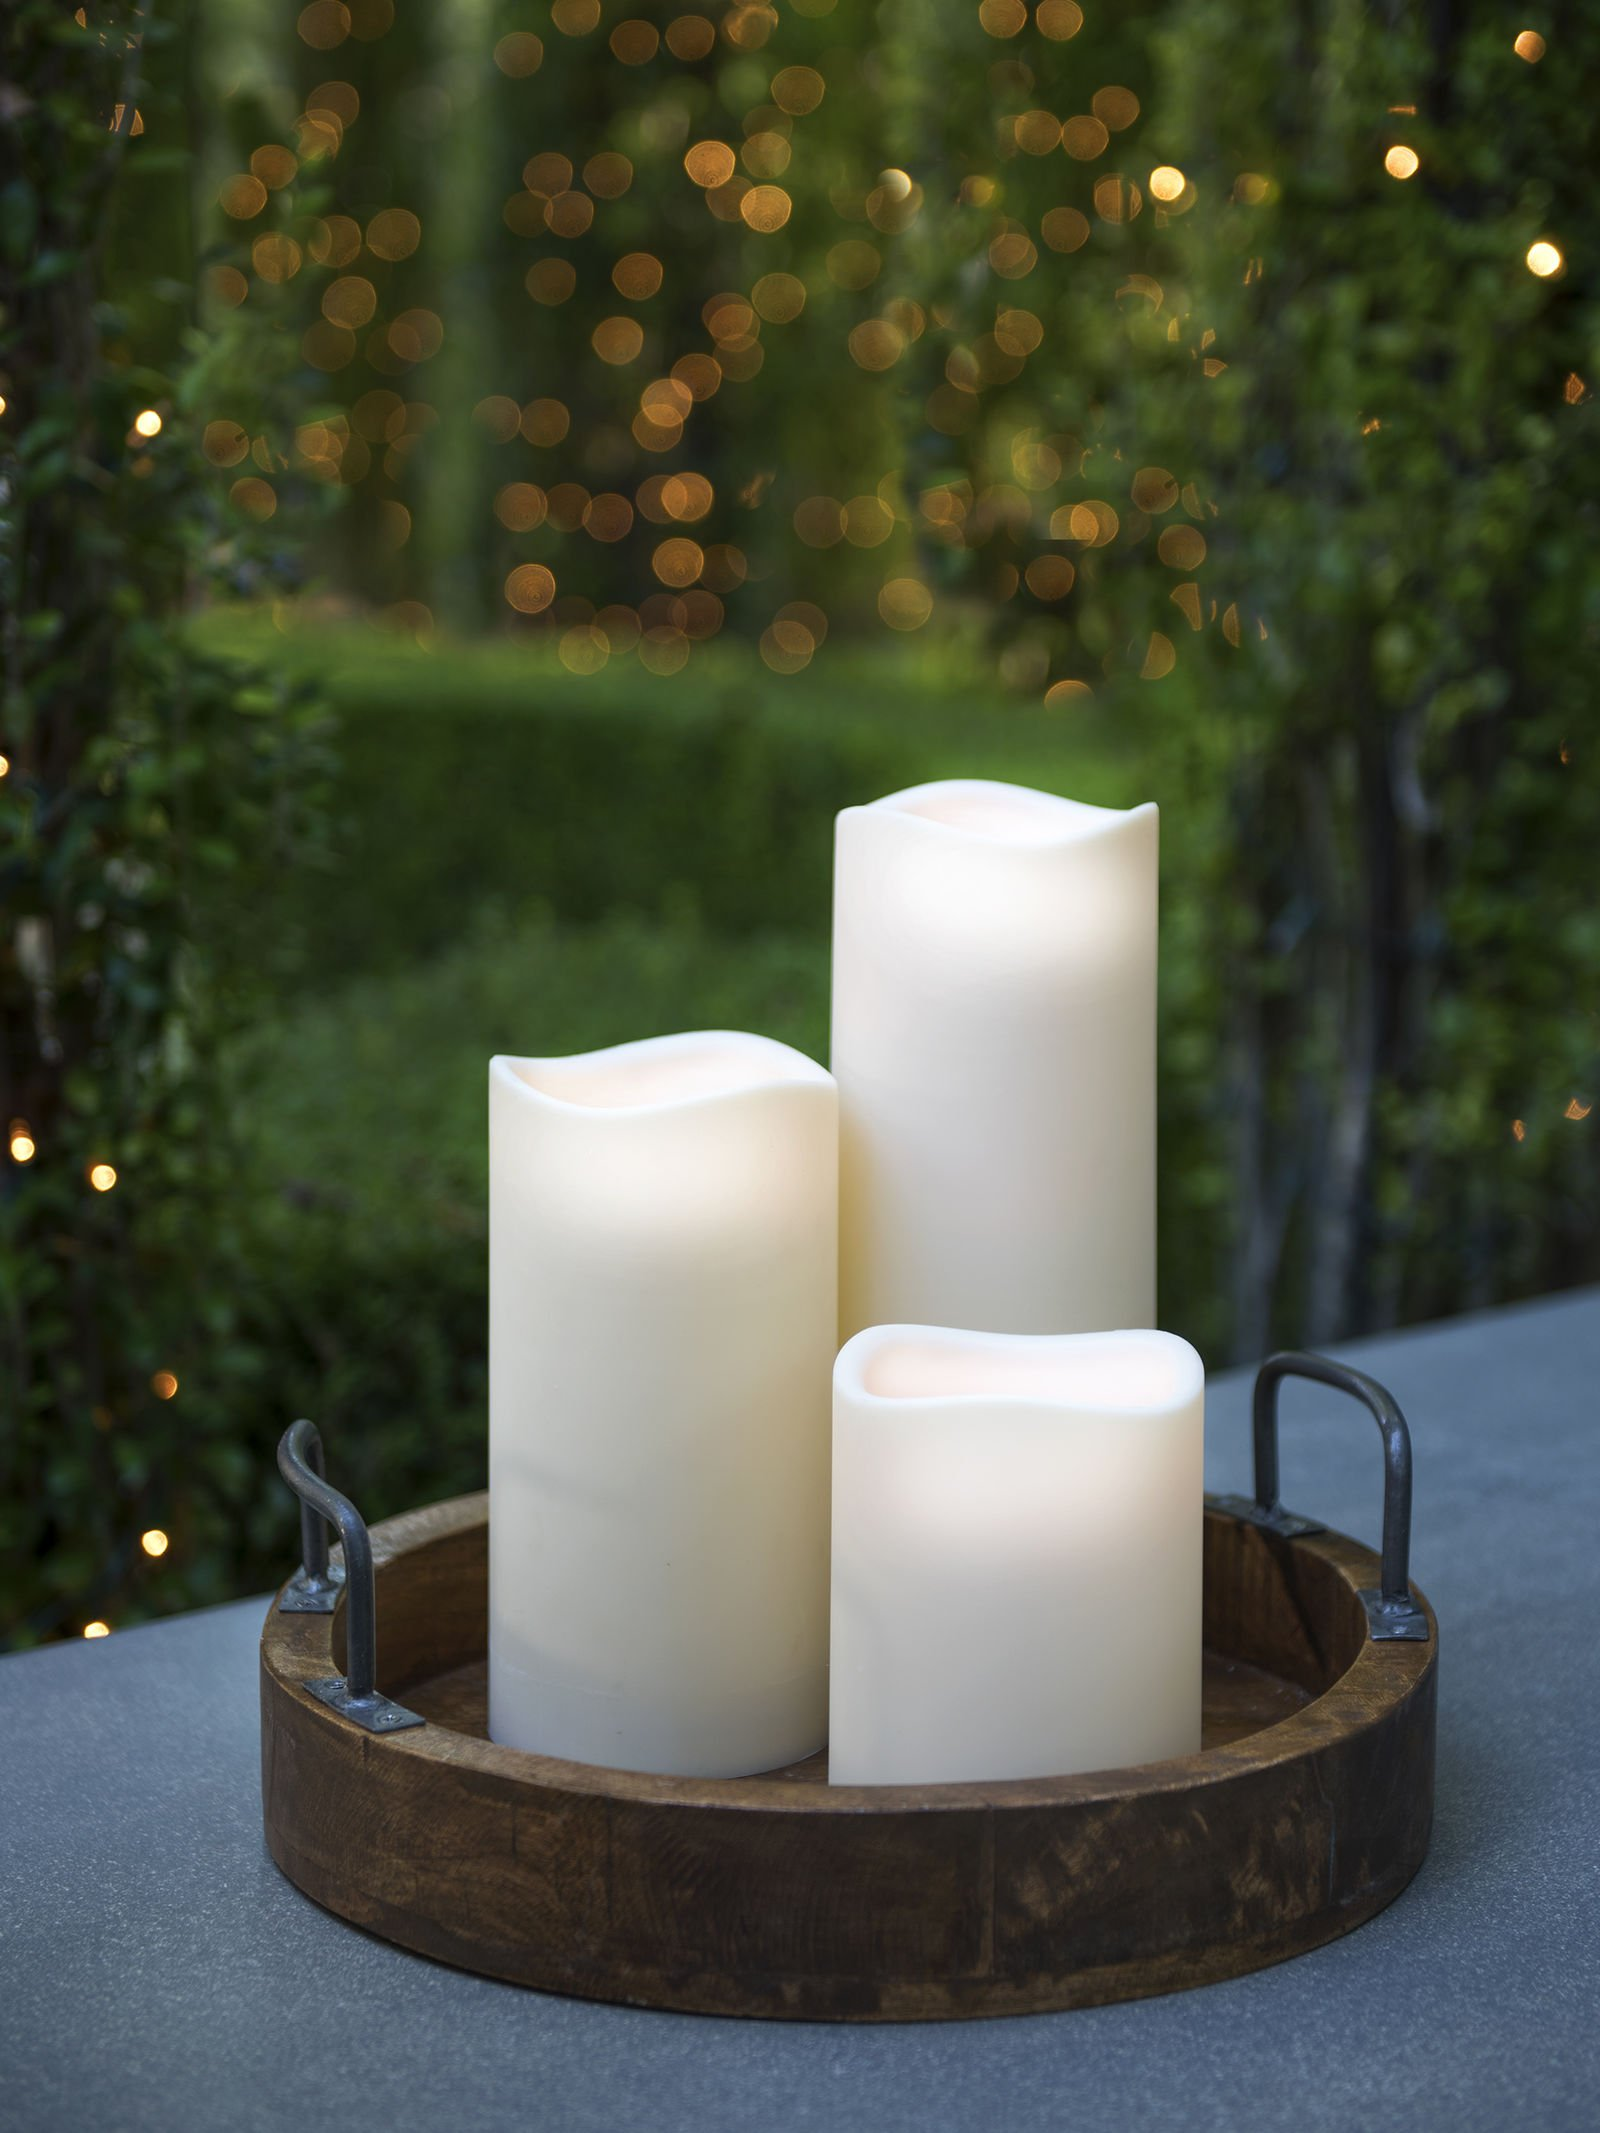 Everlasting Glow LED Indoor/Outdoor Candle, Timer, Bisque, 4.5'' x 9'' by The Gerson Company